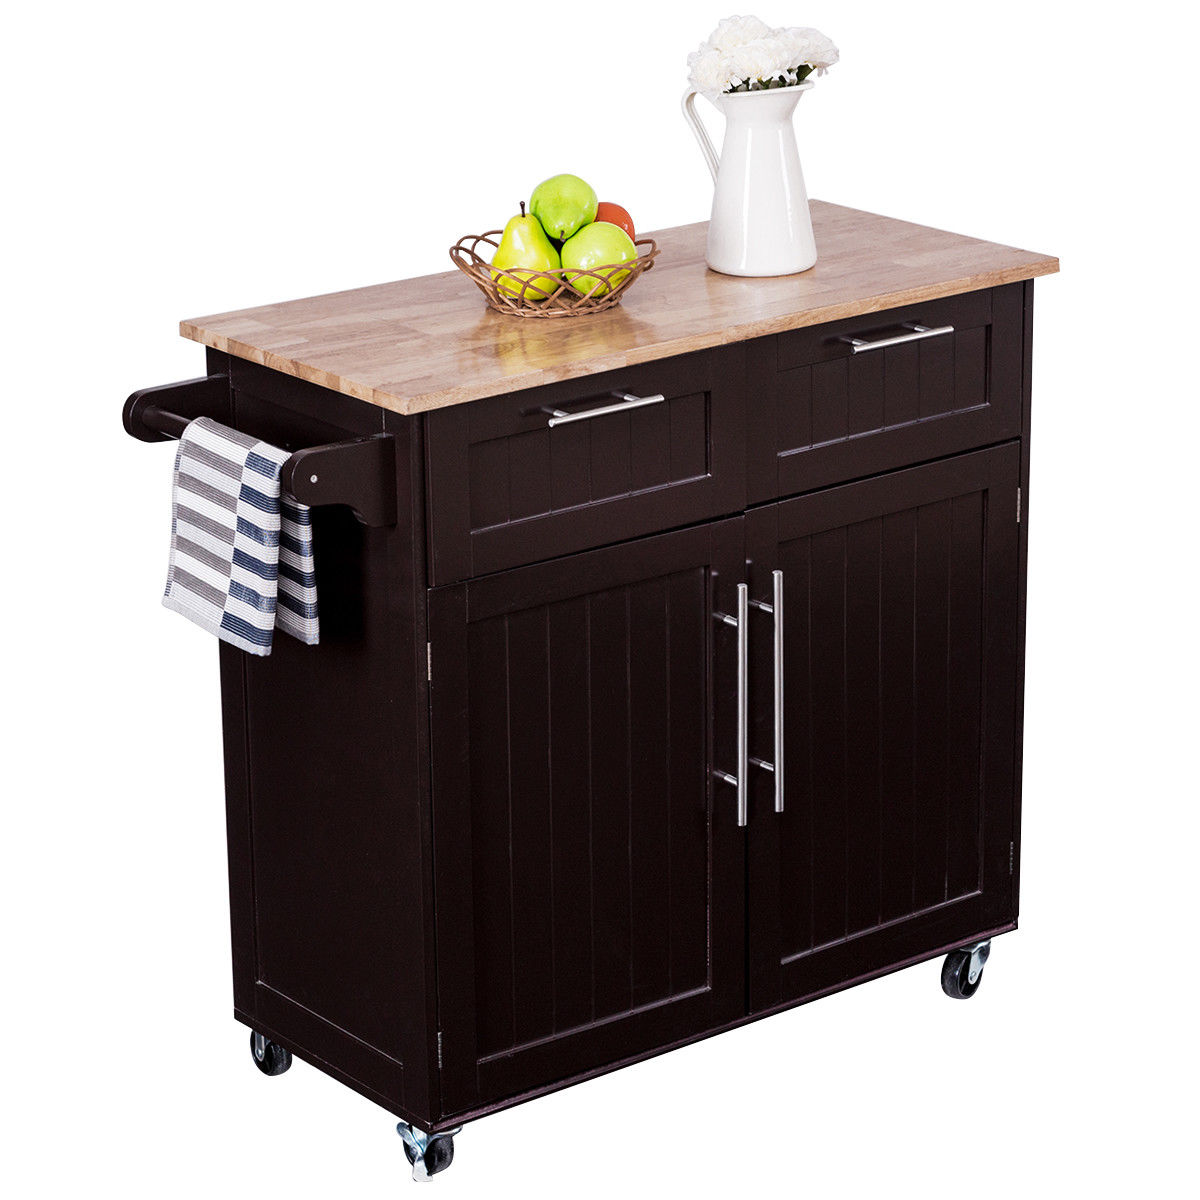 Costway Rolling Kitchen Cart Island Heavy Duty Storage Trolley Cabinet  Utility Modern